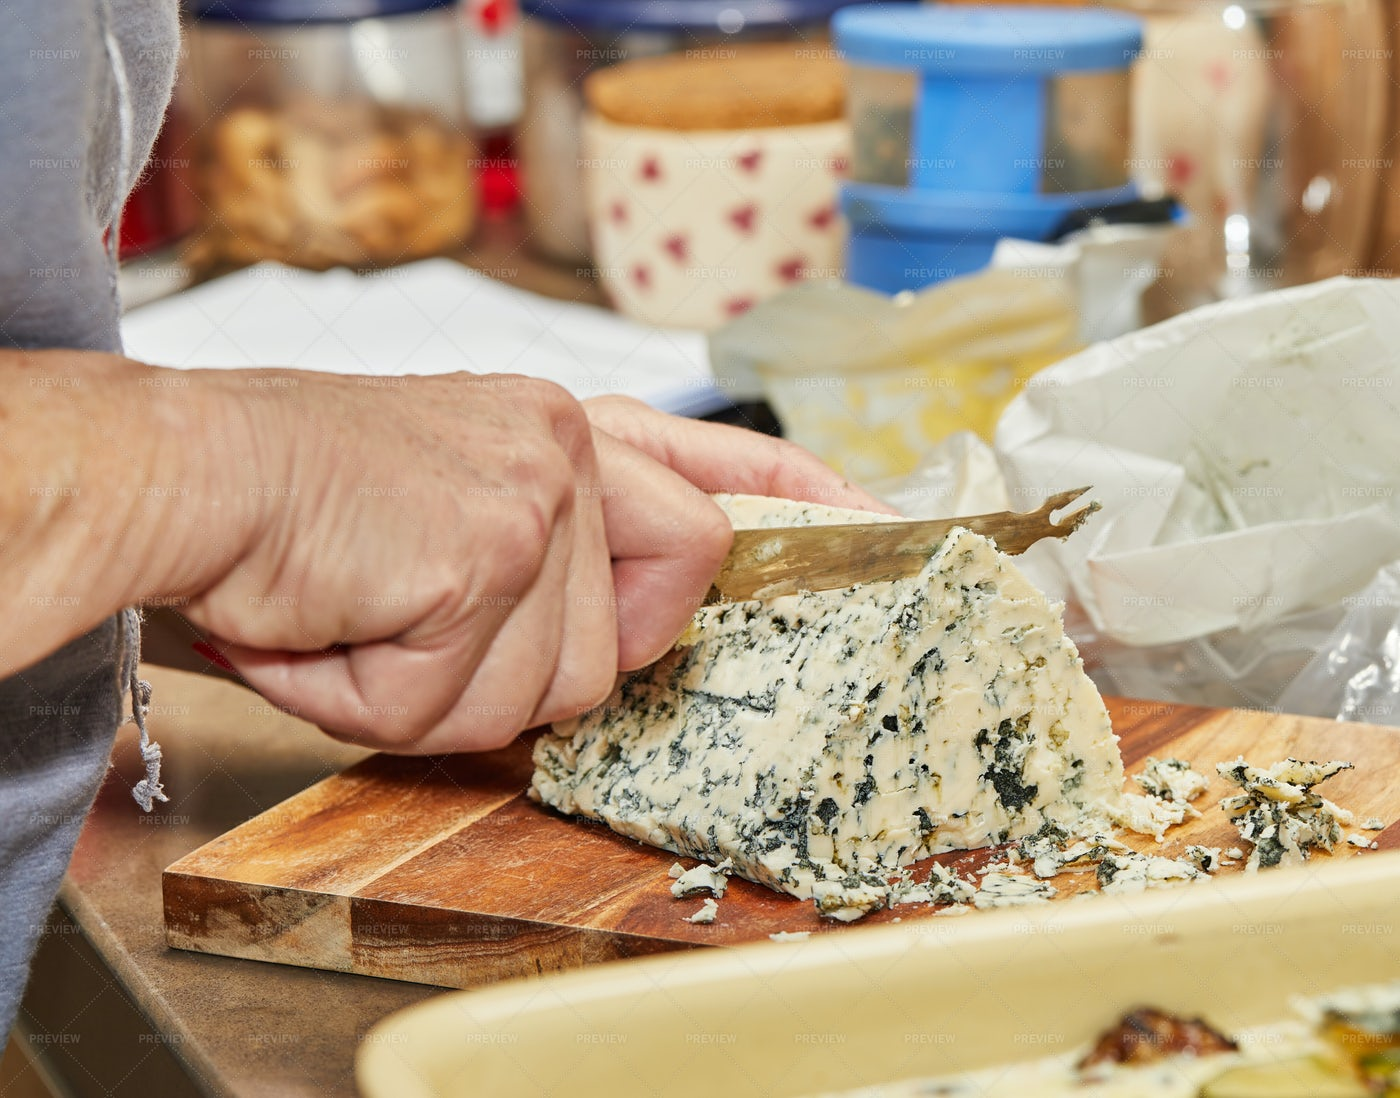 Woman Cuts Cheese With Knife: Stock Photos